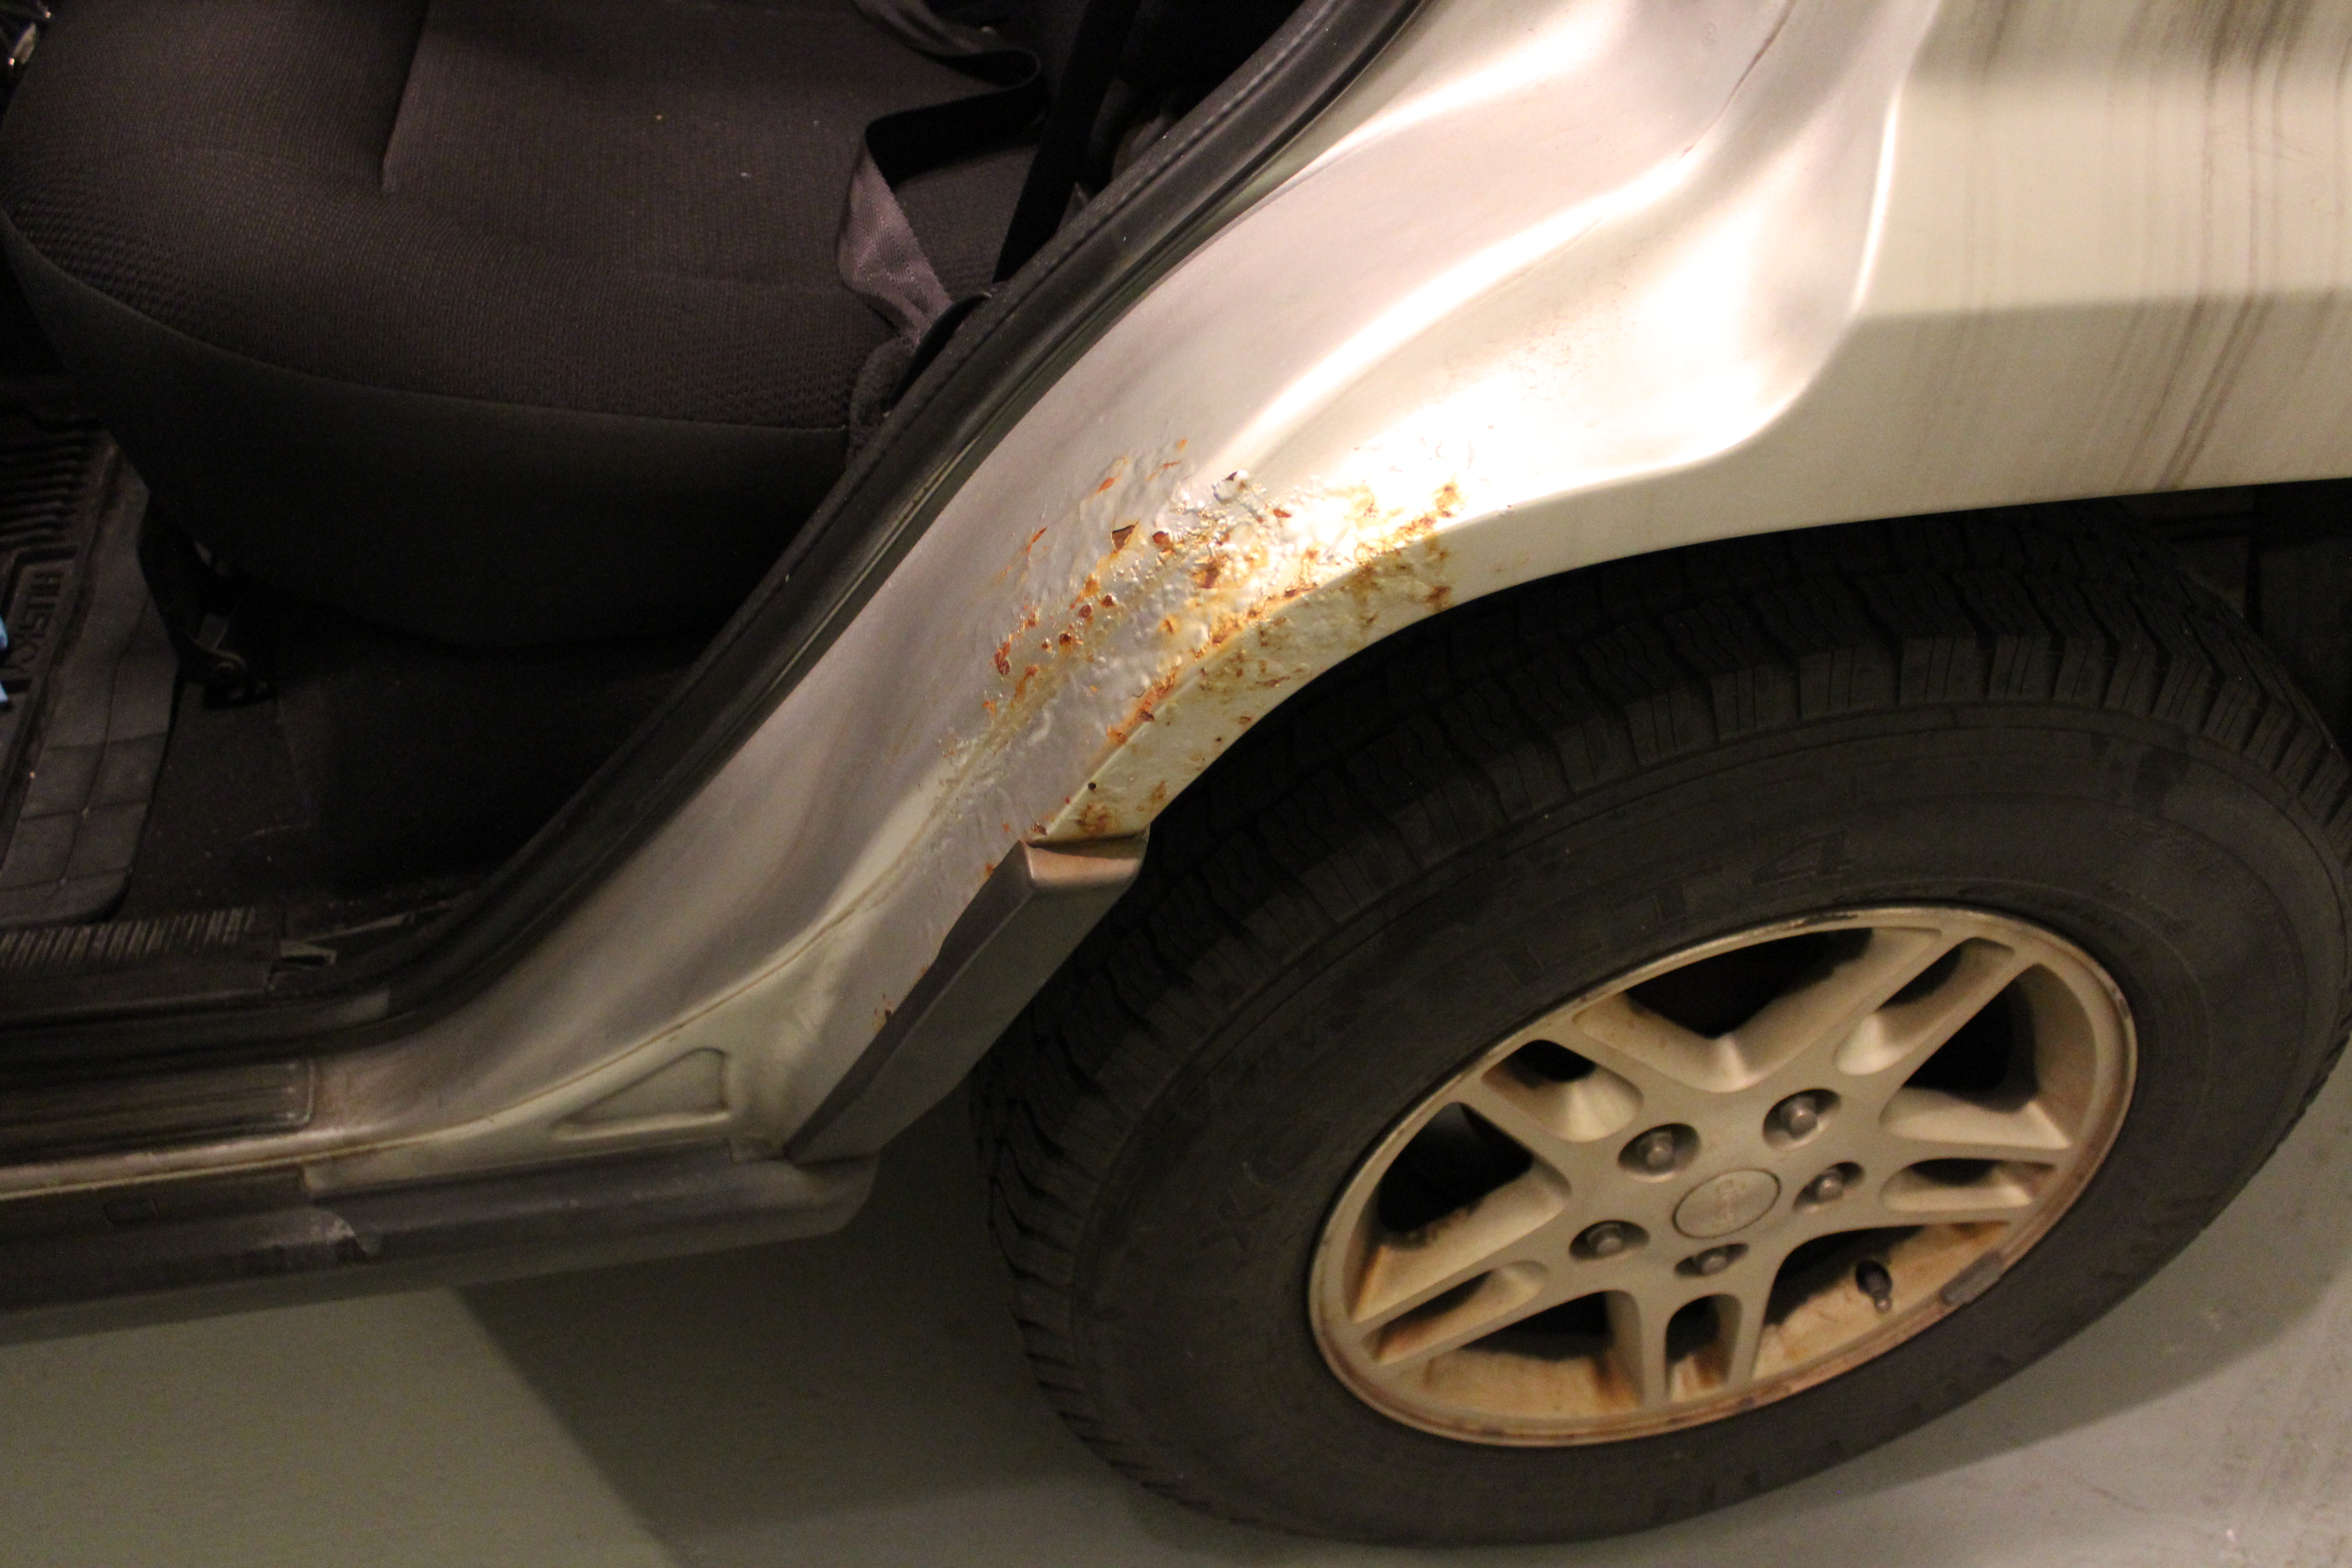 How bad is rust on a car frame - naejeclificb24\'s soup